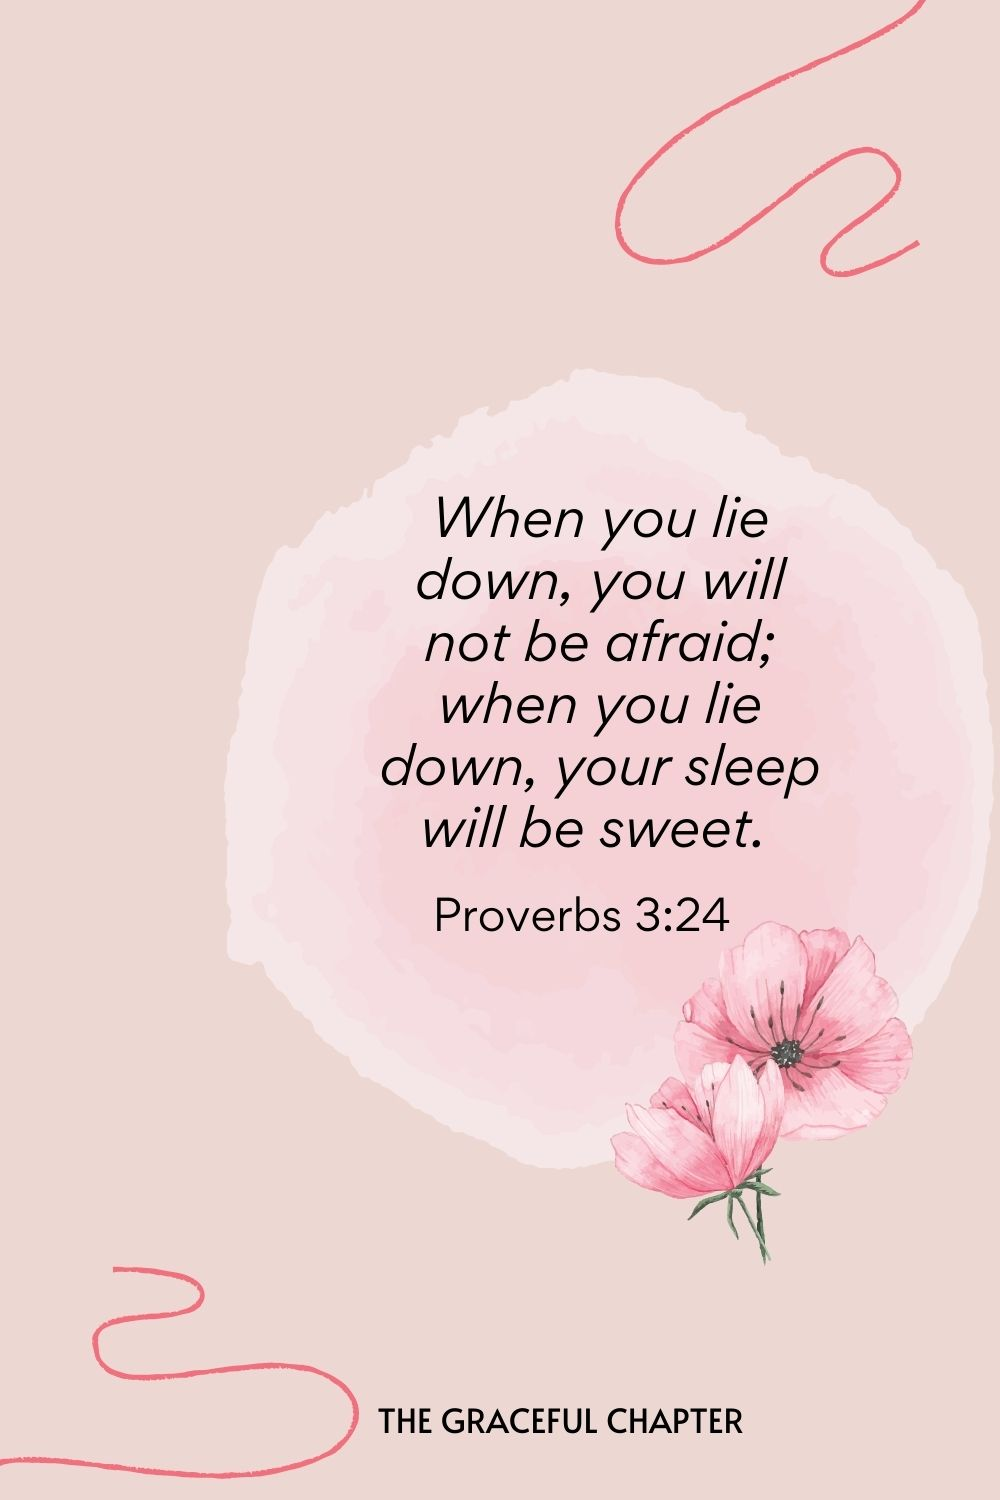 When you lie down, you will not be afraid; when you lie down, your sleep will be sweet.  Proverbs 3:24